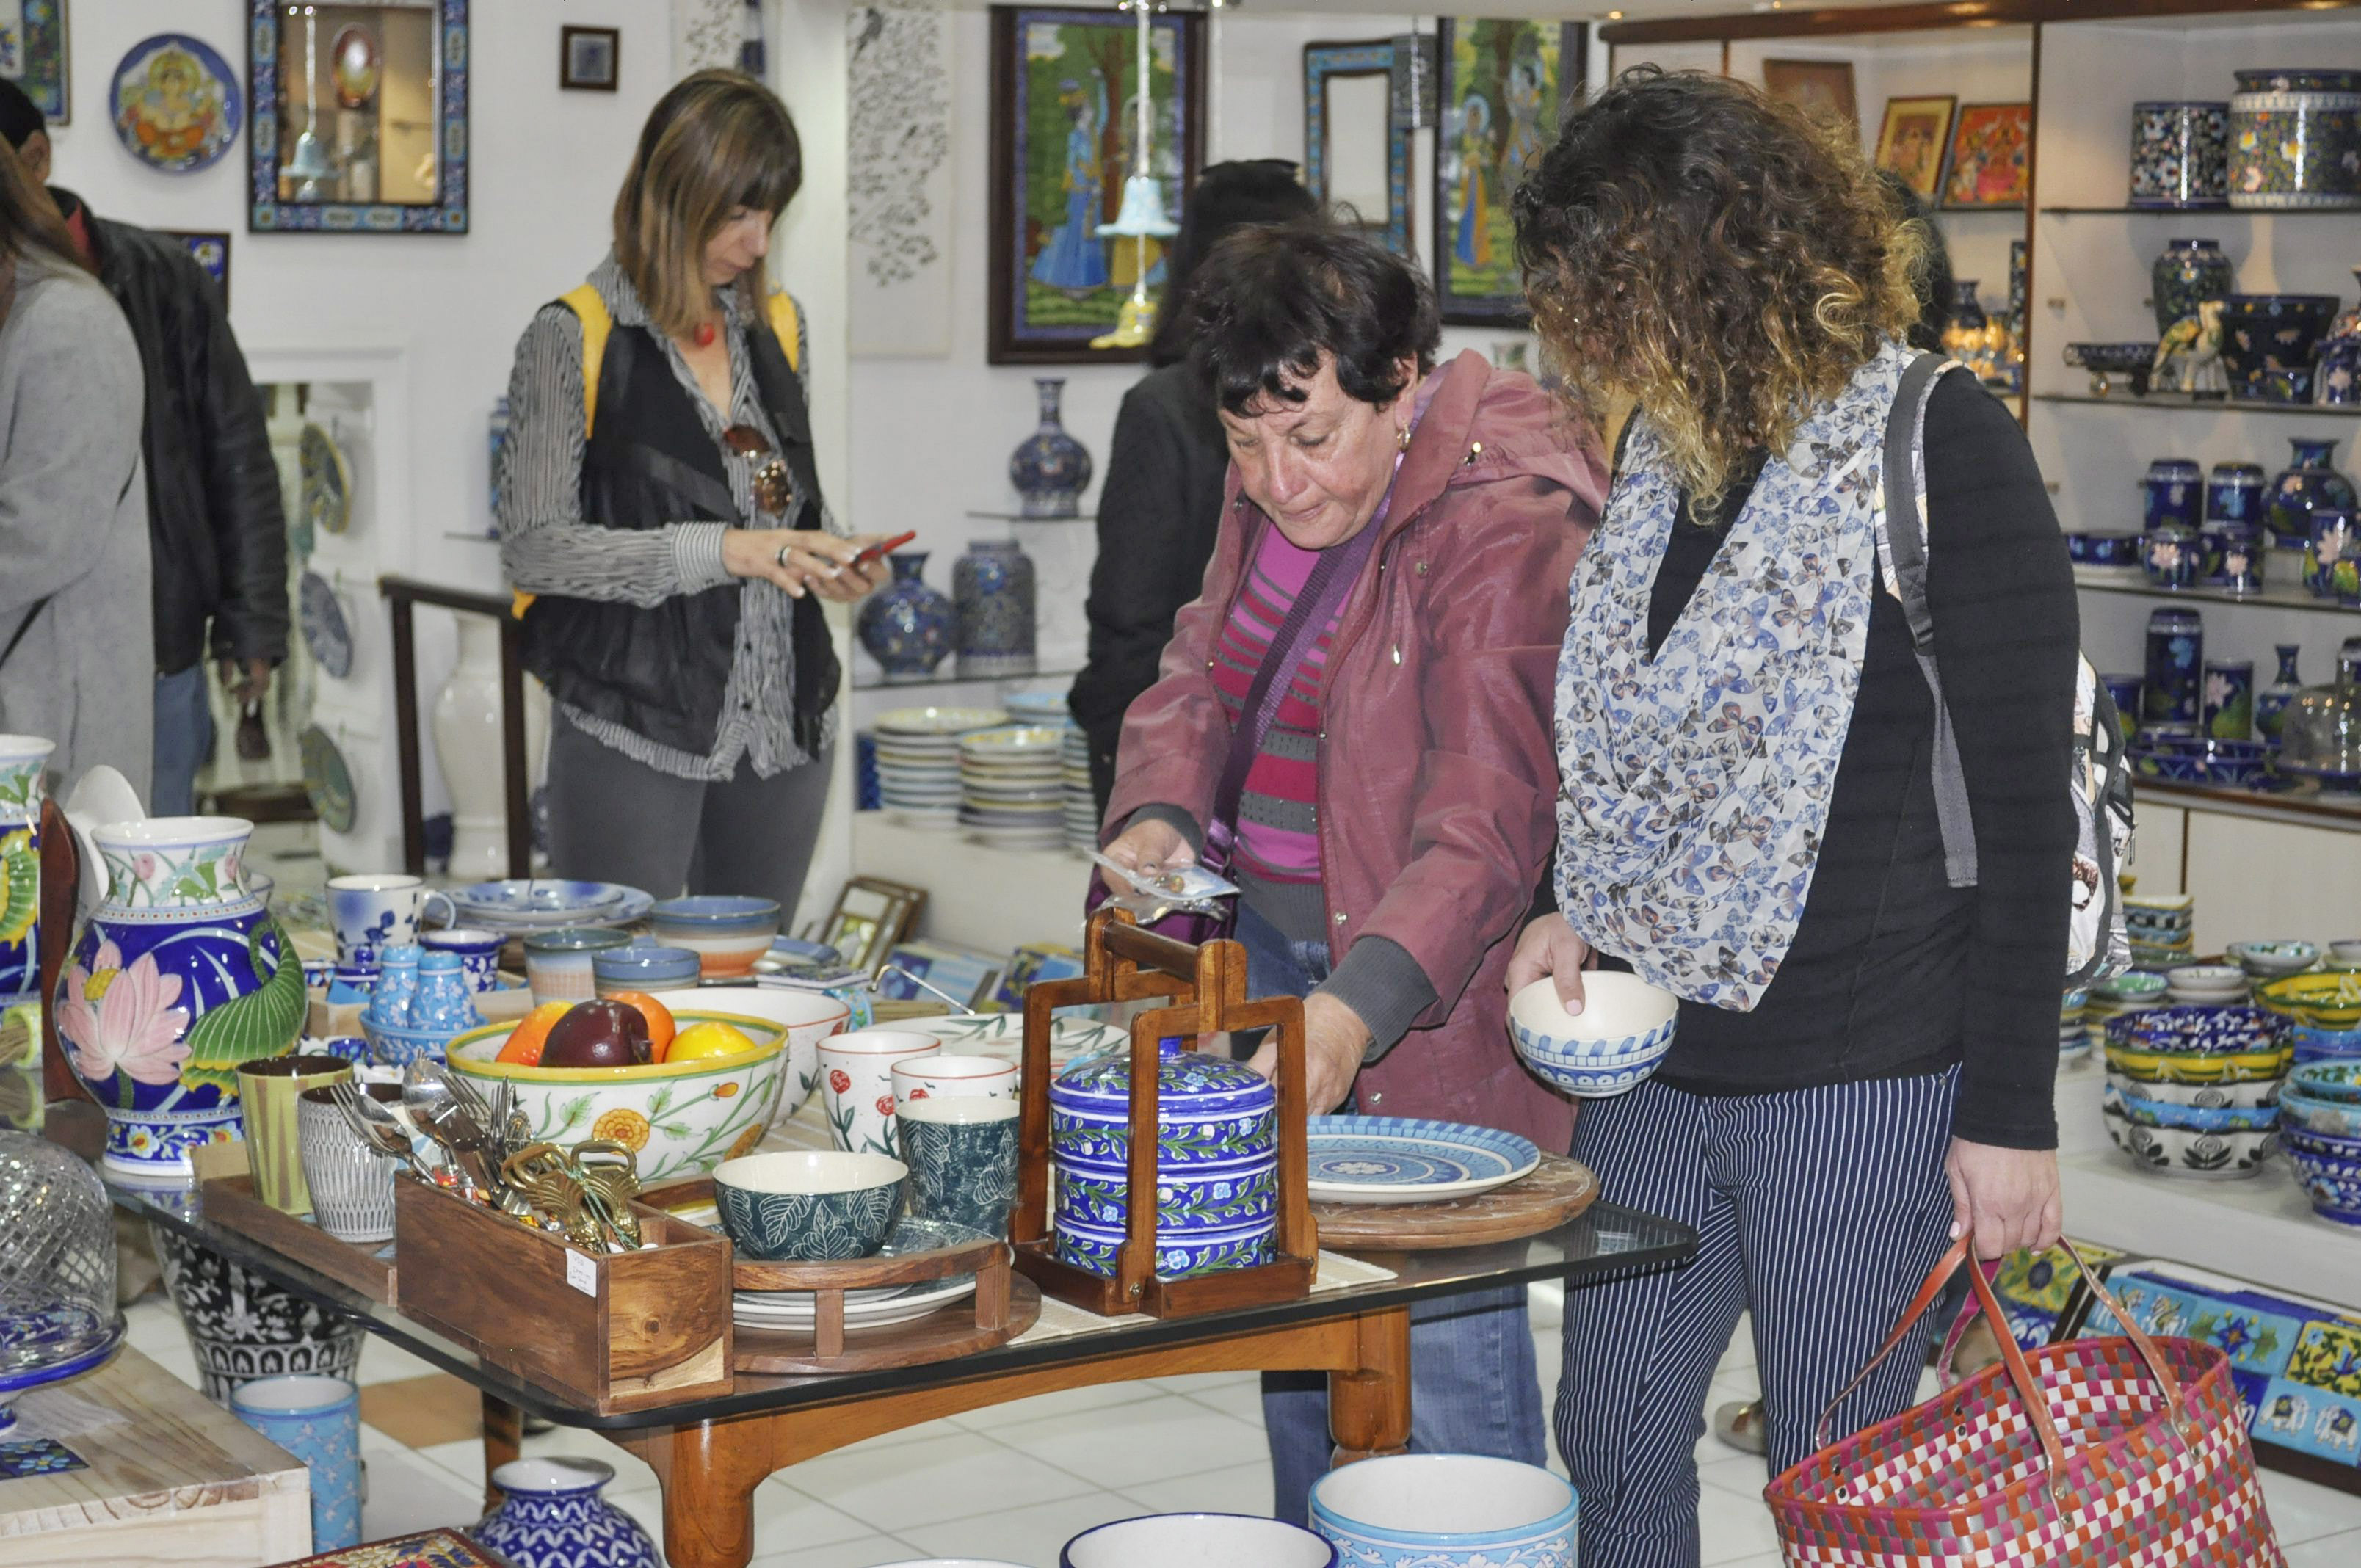 The group engaged themselves while shopping for blue pottery articles 01